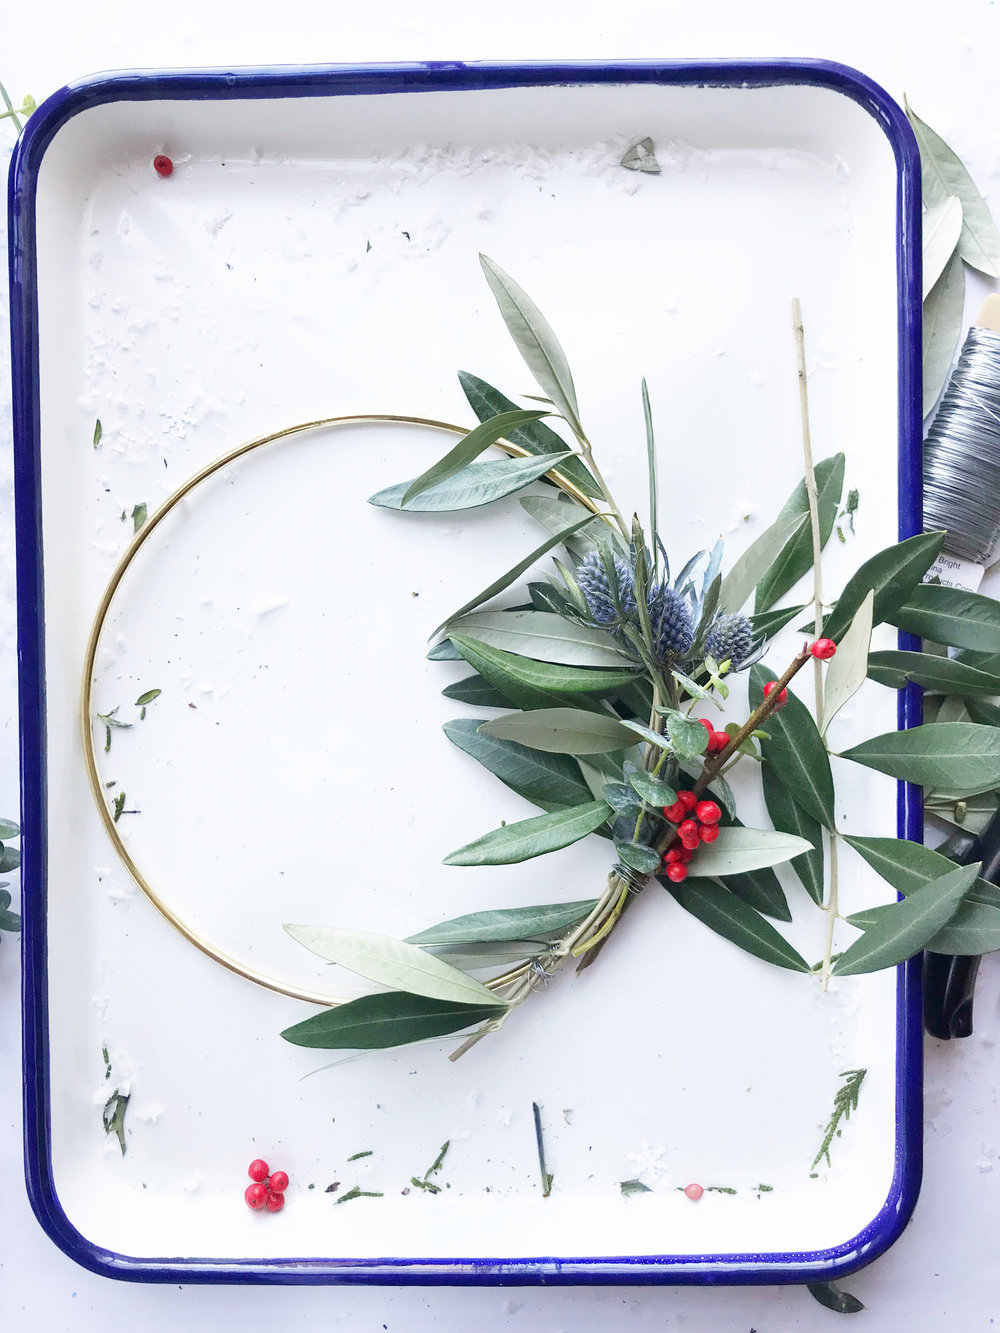 diy_holiday_wreath_13.jpg